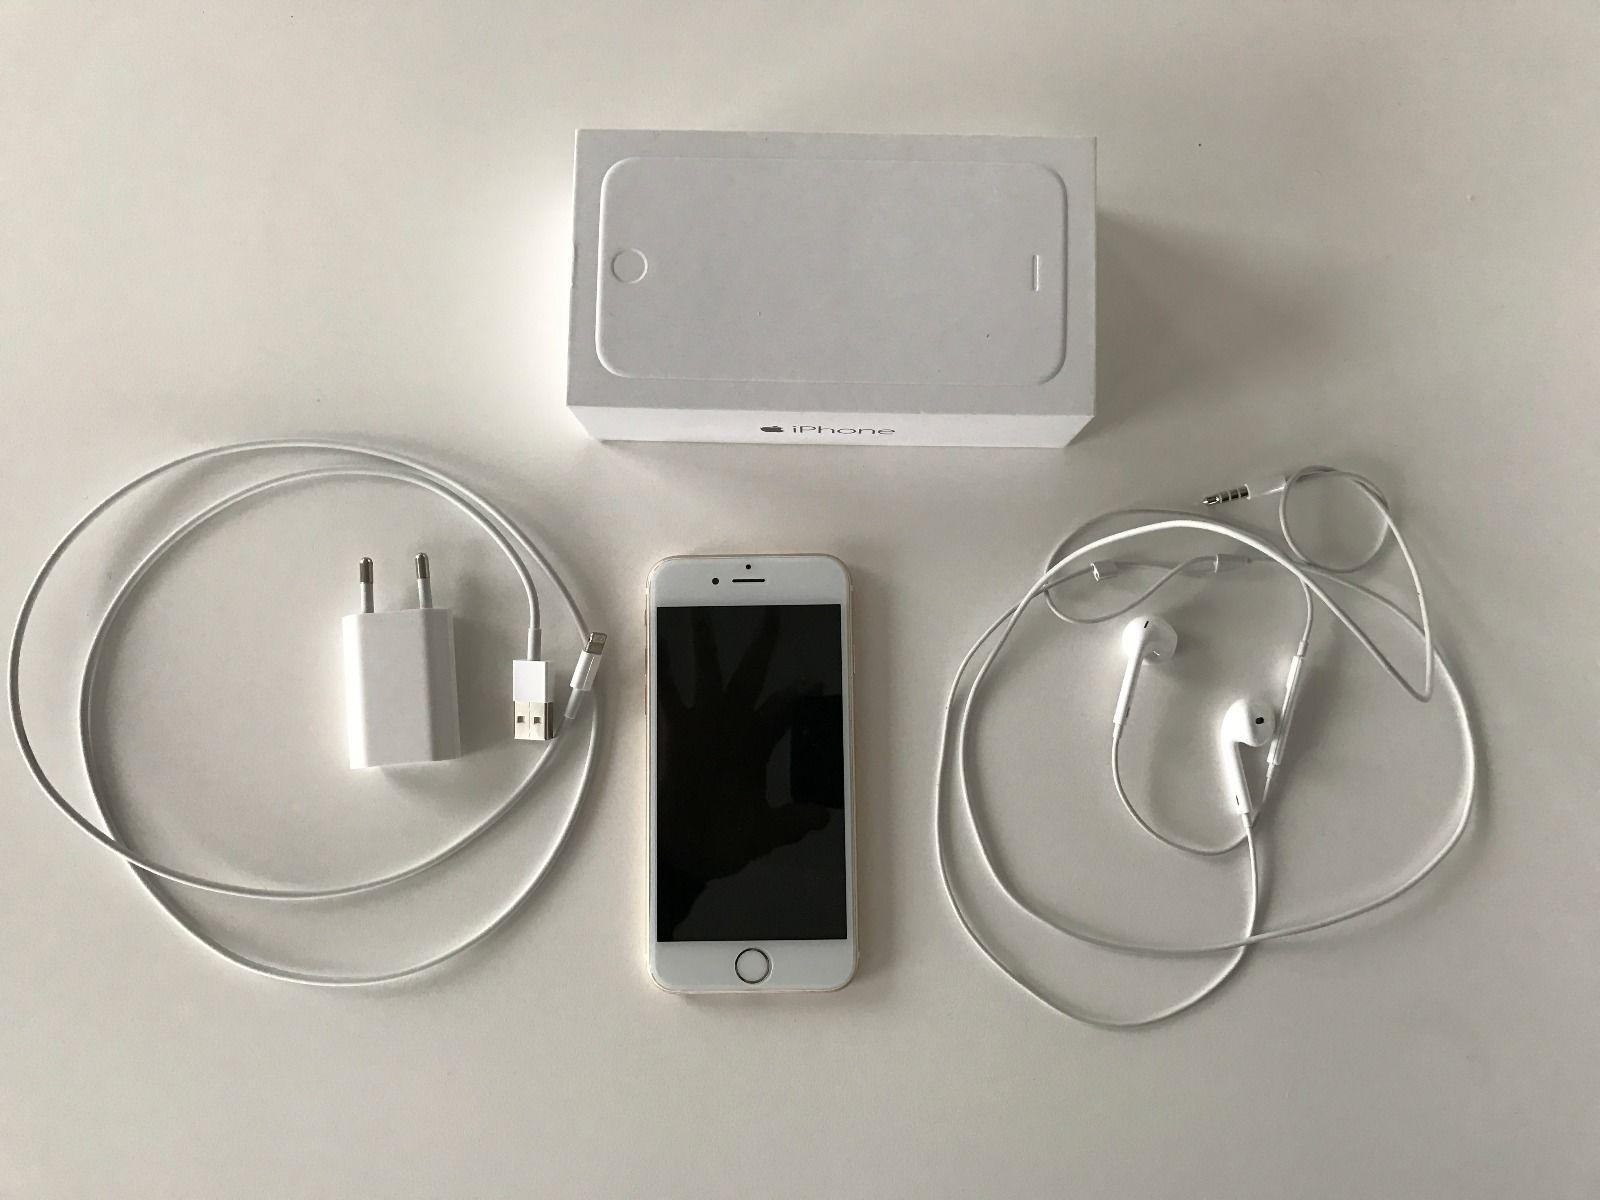 Iphone 6 64gb Grey Fullset Nego Apple Warranty Its Originalin A Box It Comes With All Accessories Whatsapp 0166047384